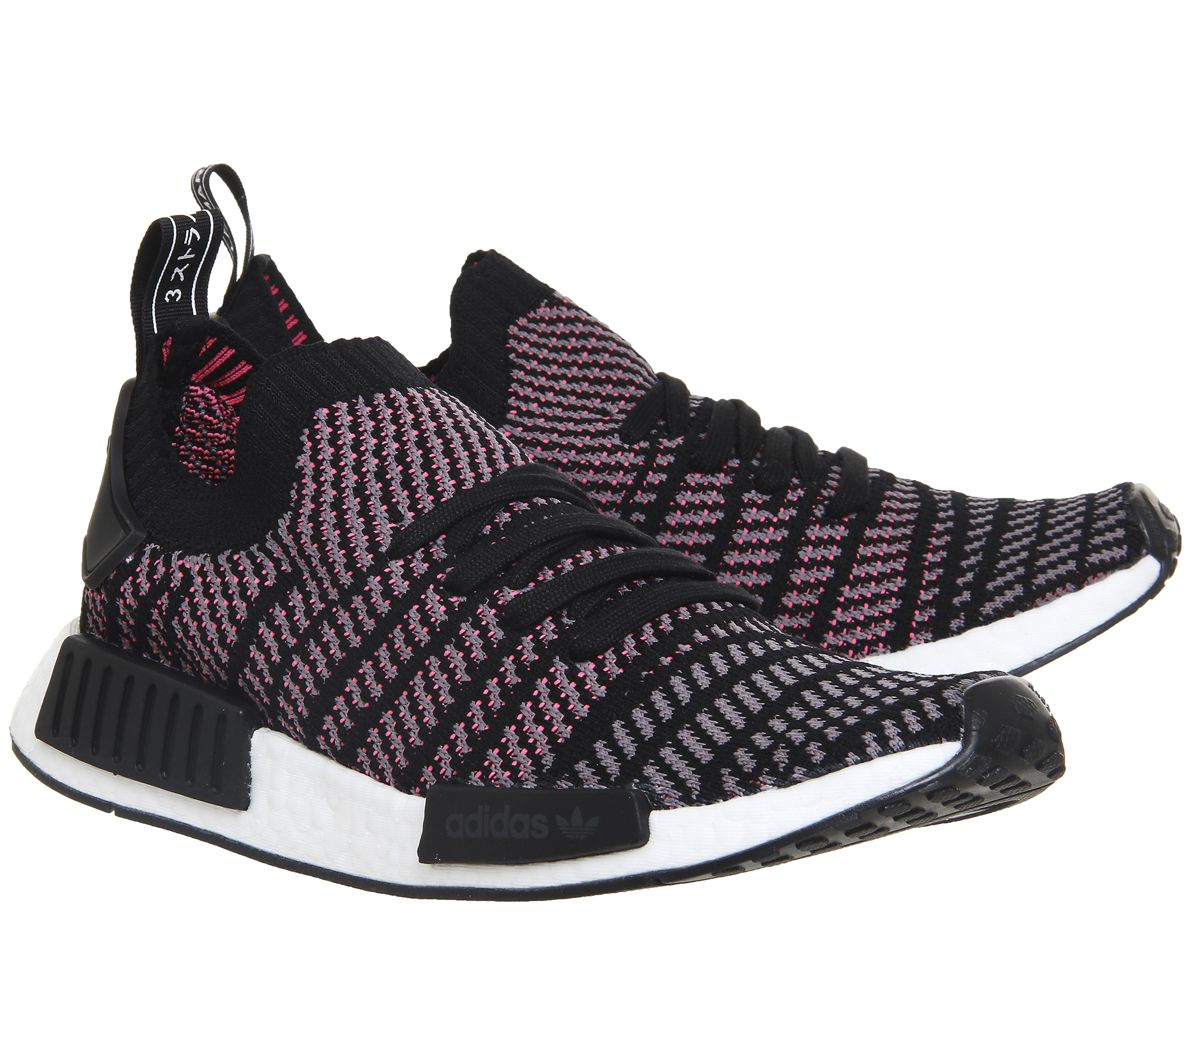 newest ba201 424d4 Details about Mens Adidas Nmd R1 Prime Knit Clear Black Grey Solar Pink  Trainers Shoes